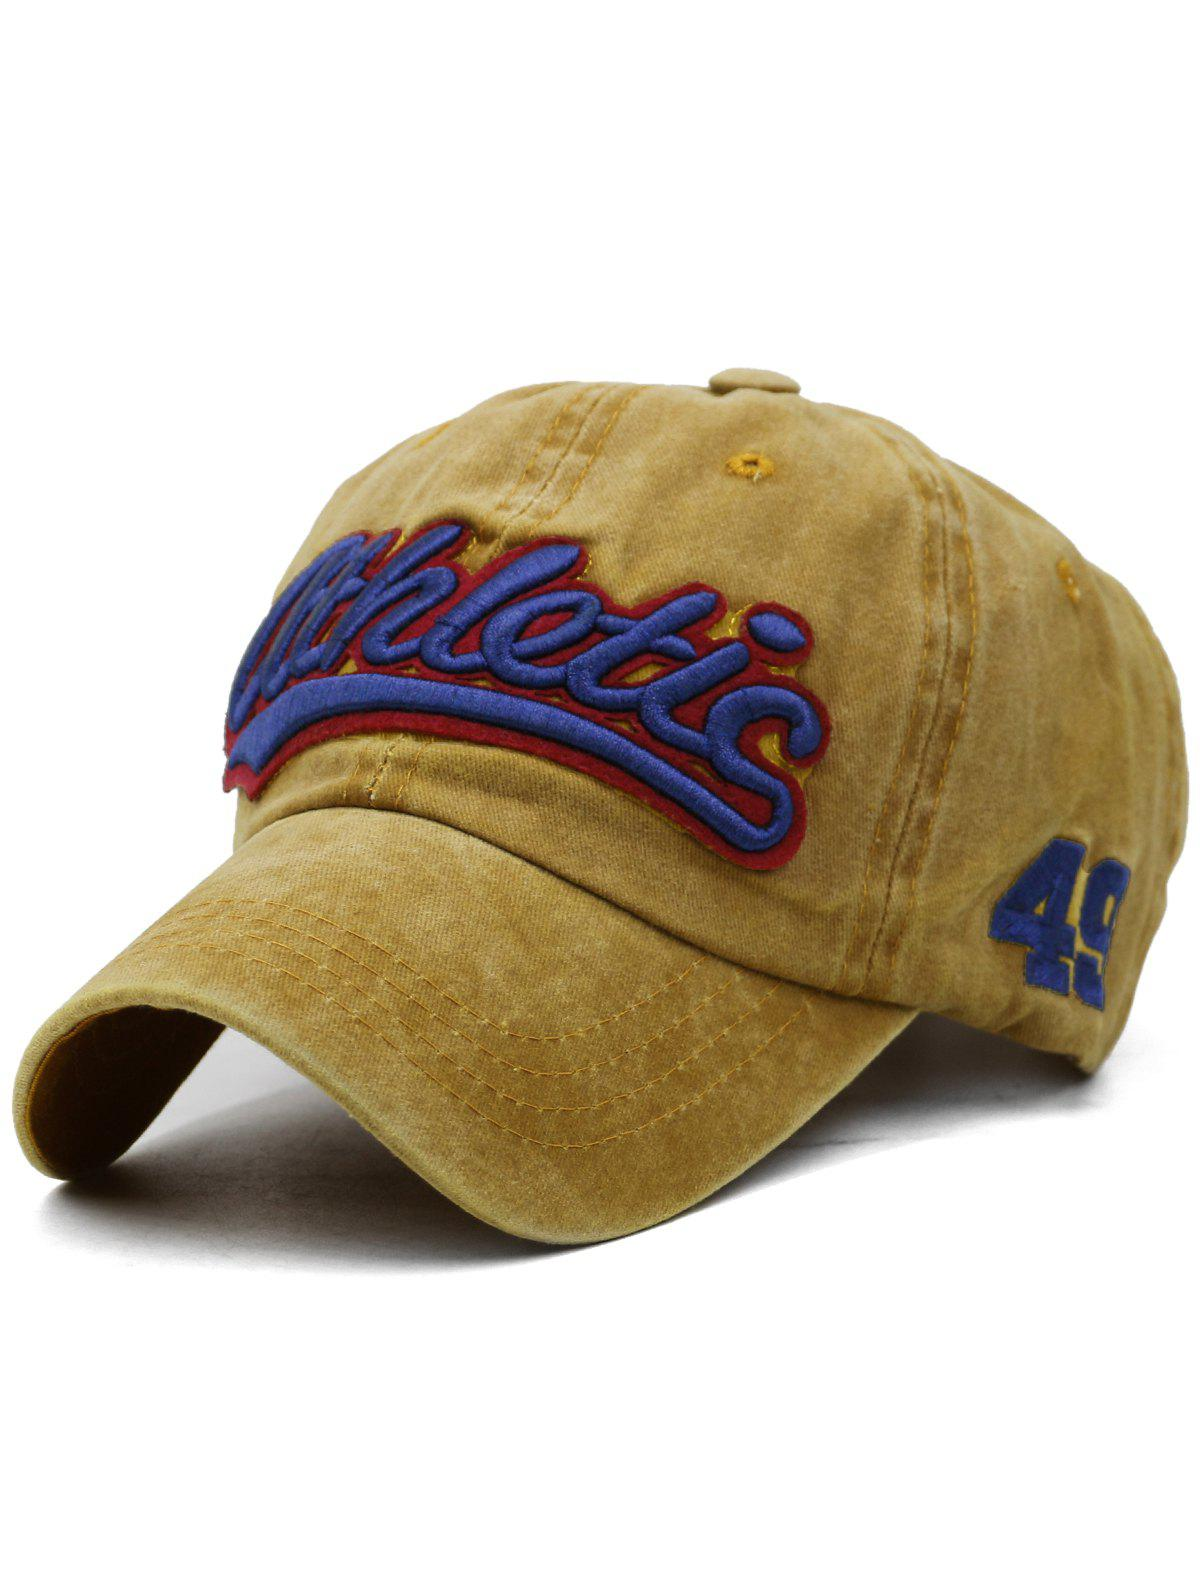 Unique Letter  Embroidered Washed Dyed Trucker Hat